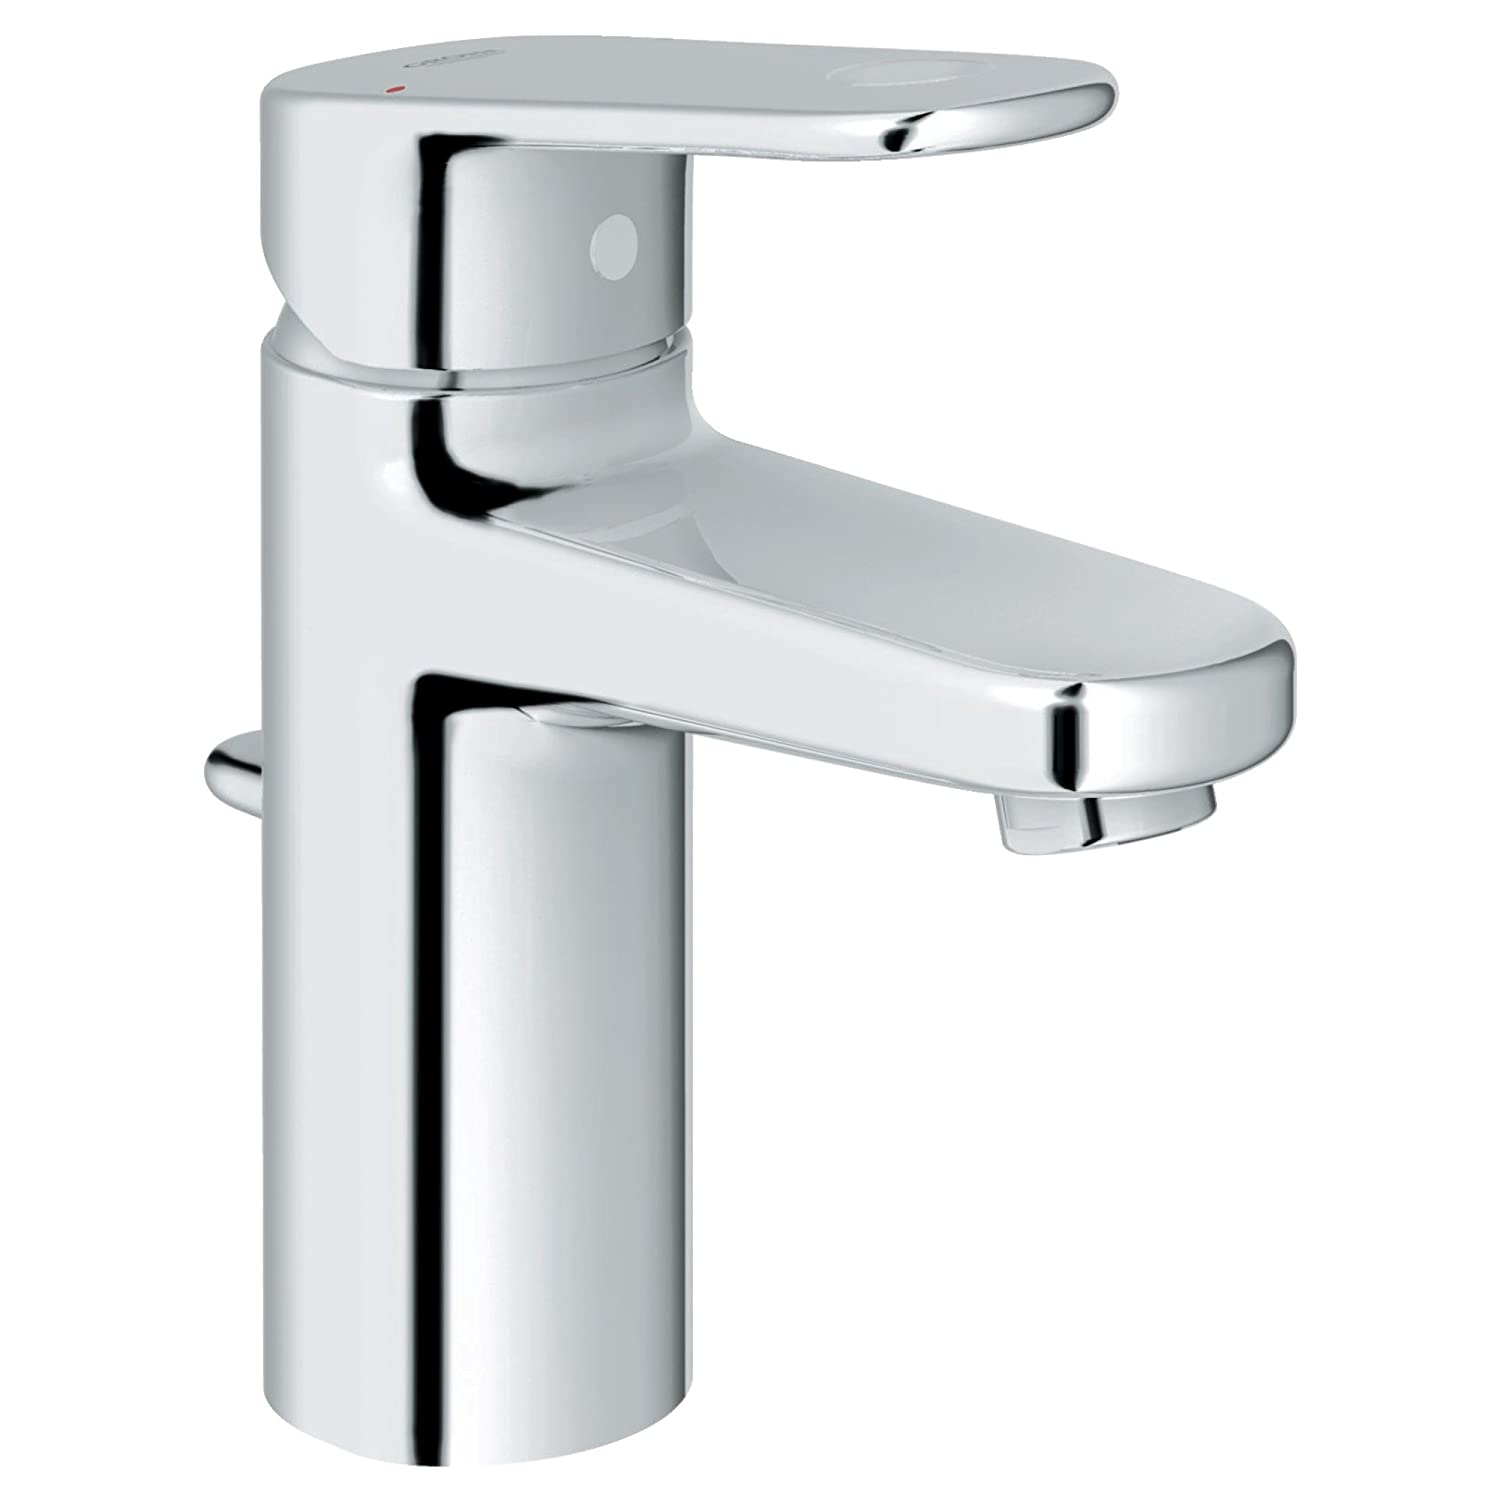 buy faucets bathroom where picture build to faucet how unique inspiration products a affordable modern